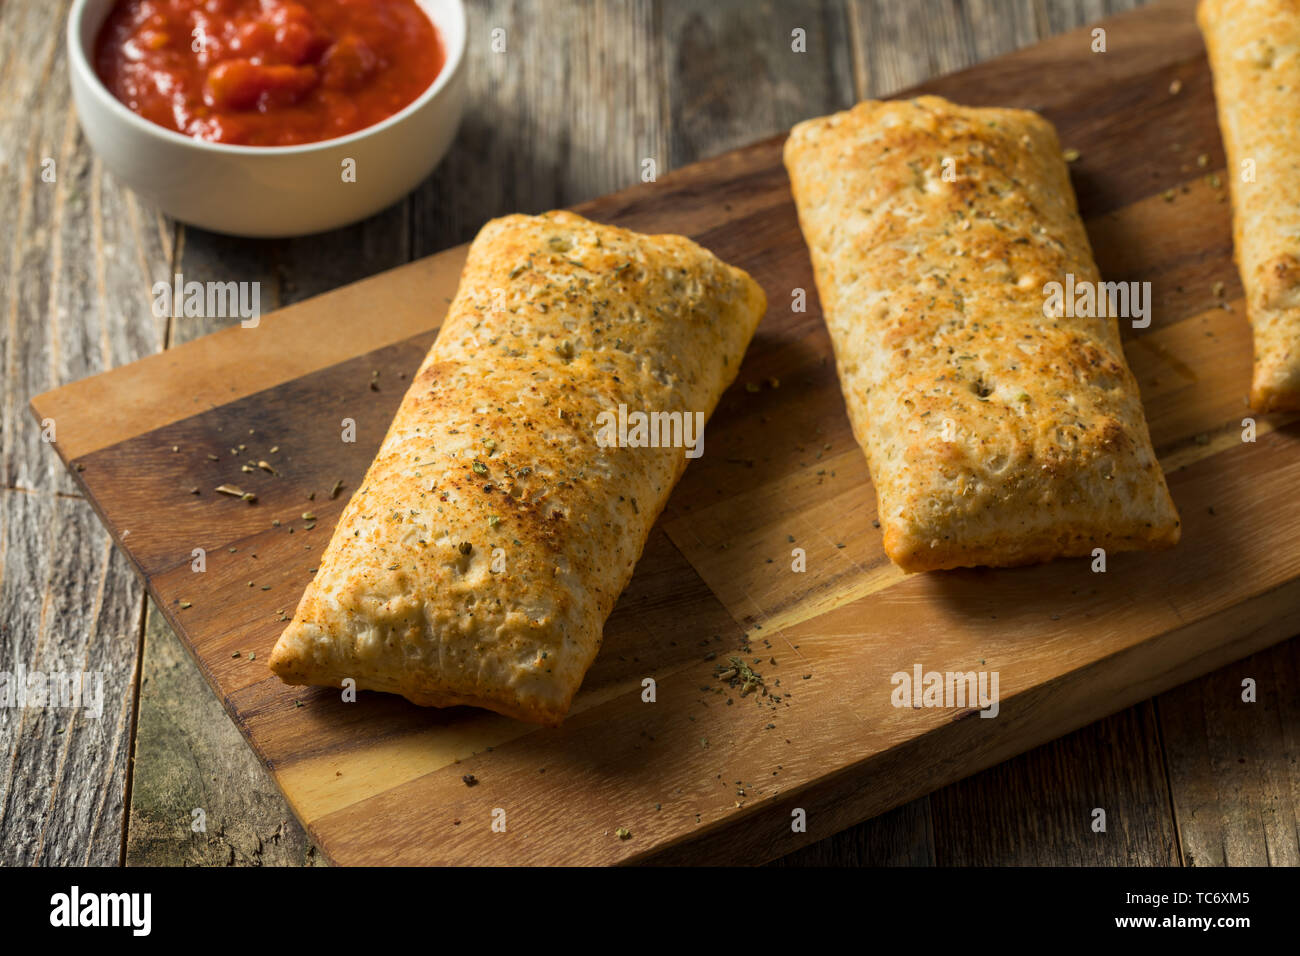 Unhealthy Microwaved Pizza Pockets with Cheese and Sauce - Stock Image